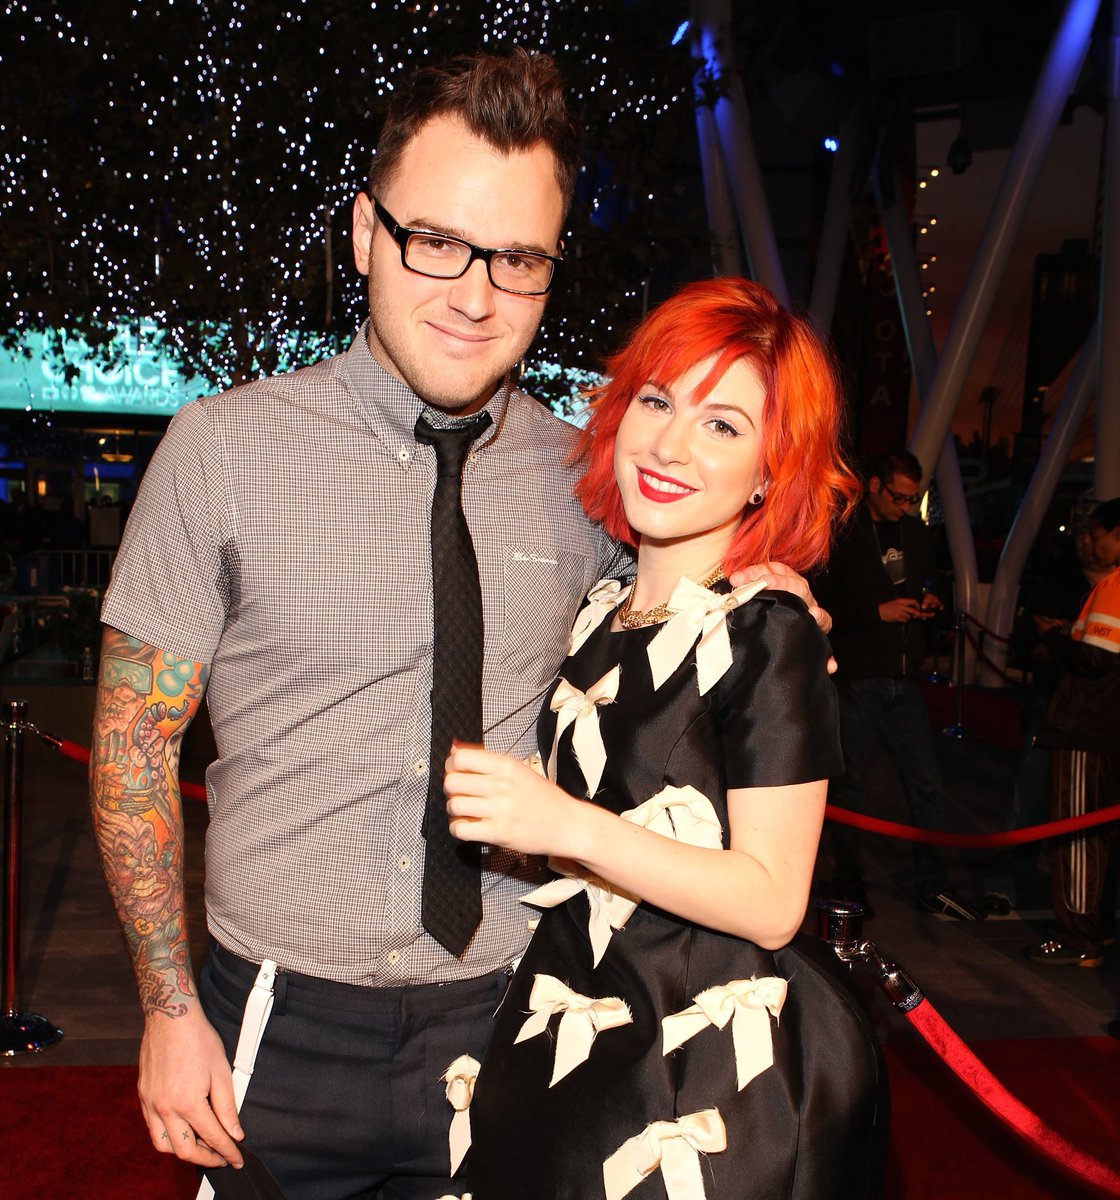 Hayley Williams and Chad Gilbert announced they were separating after a year of marriage and 10 years together